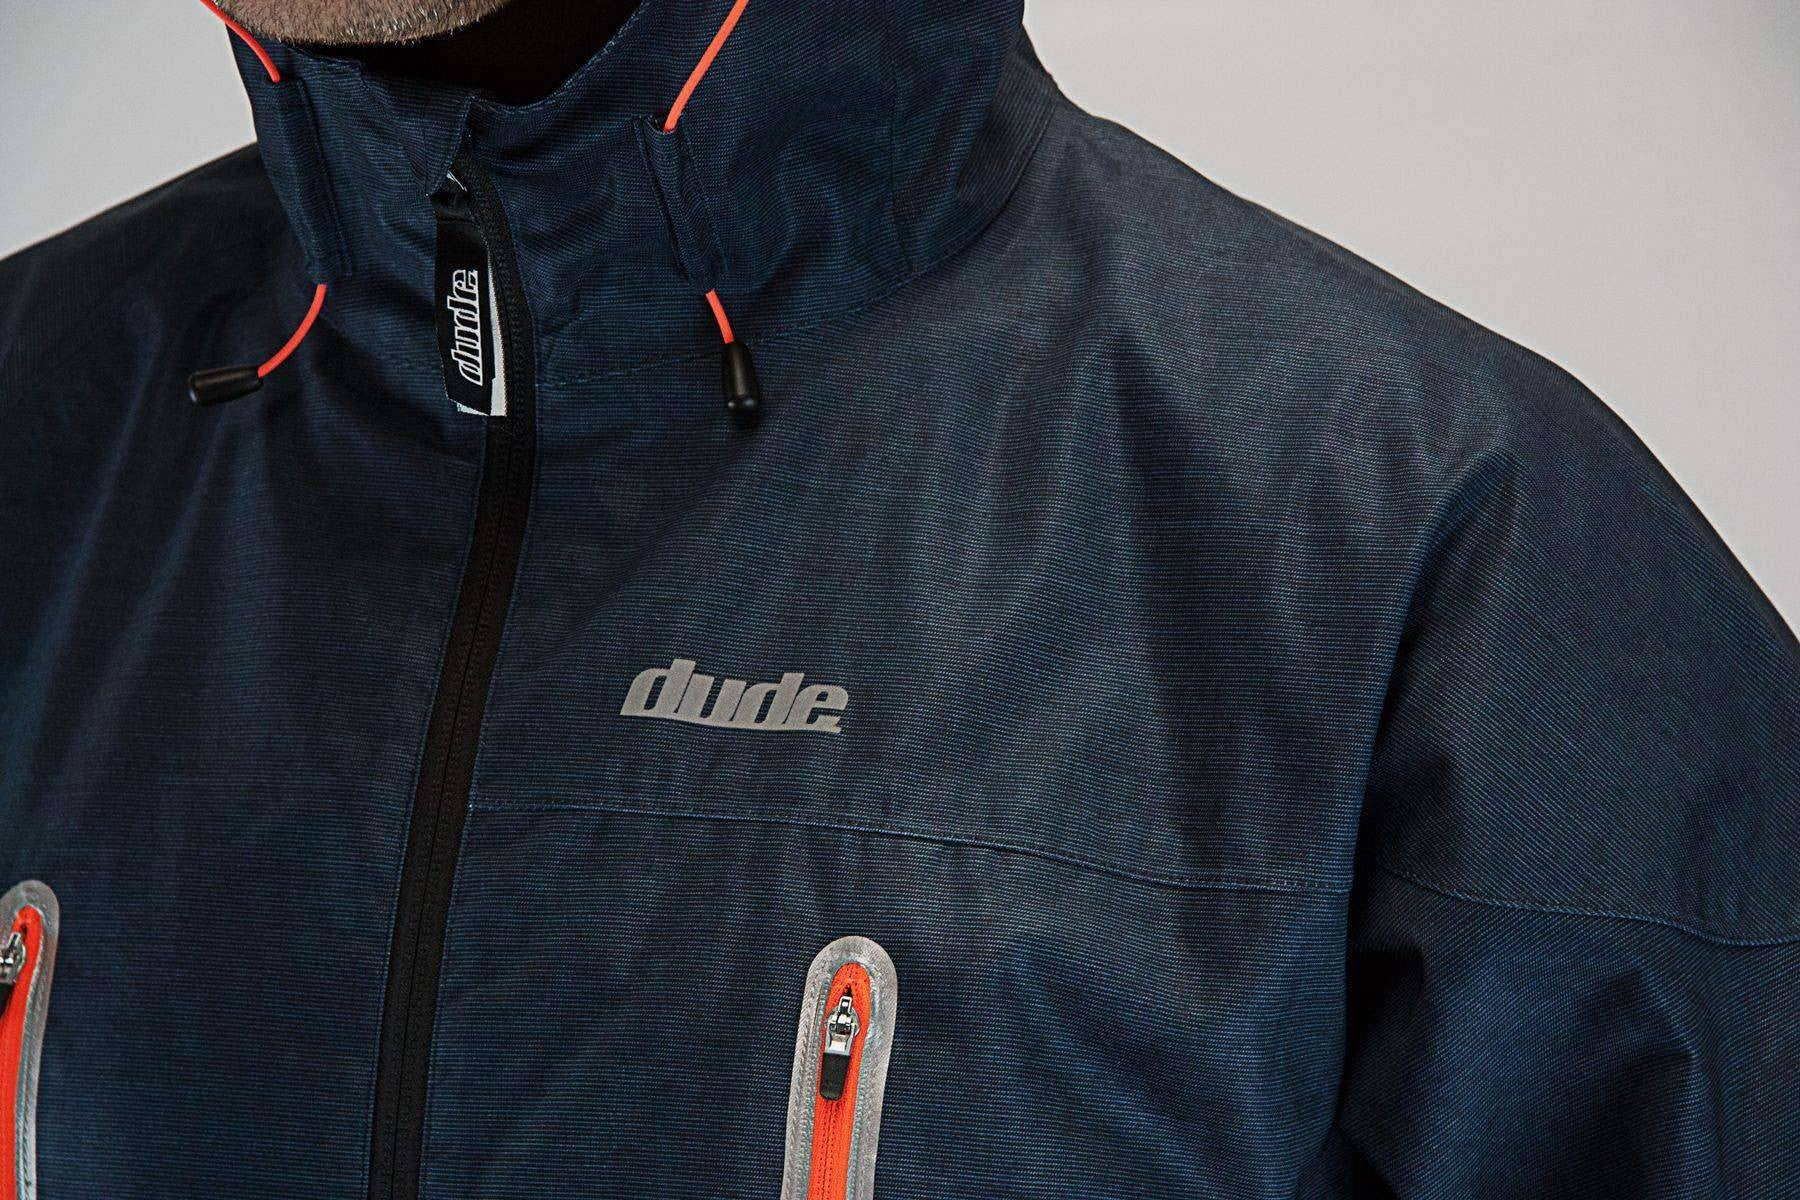 An image showing Dude Tech Caddy Jacket in black with logo